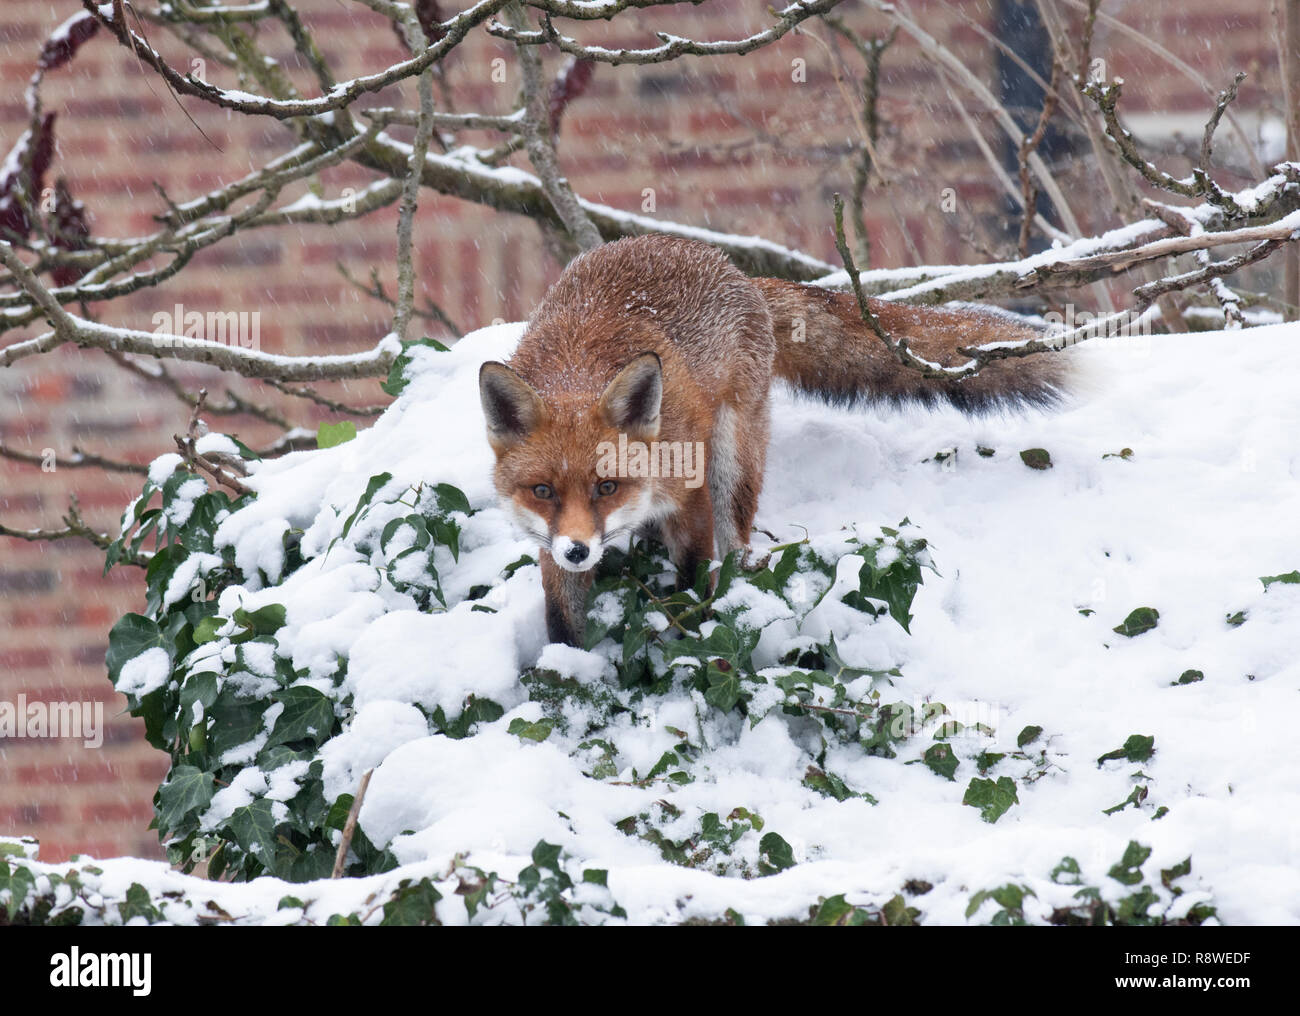 urban Red Fox, Vulpes vulpes, in winter snow standing on garden shed roof, London, United Kingdom Stock Photo